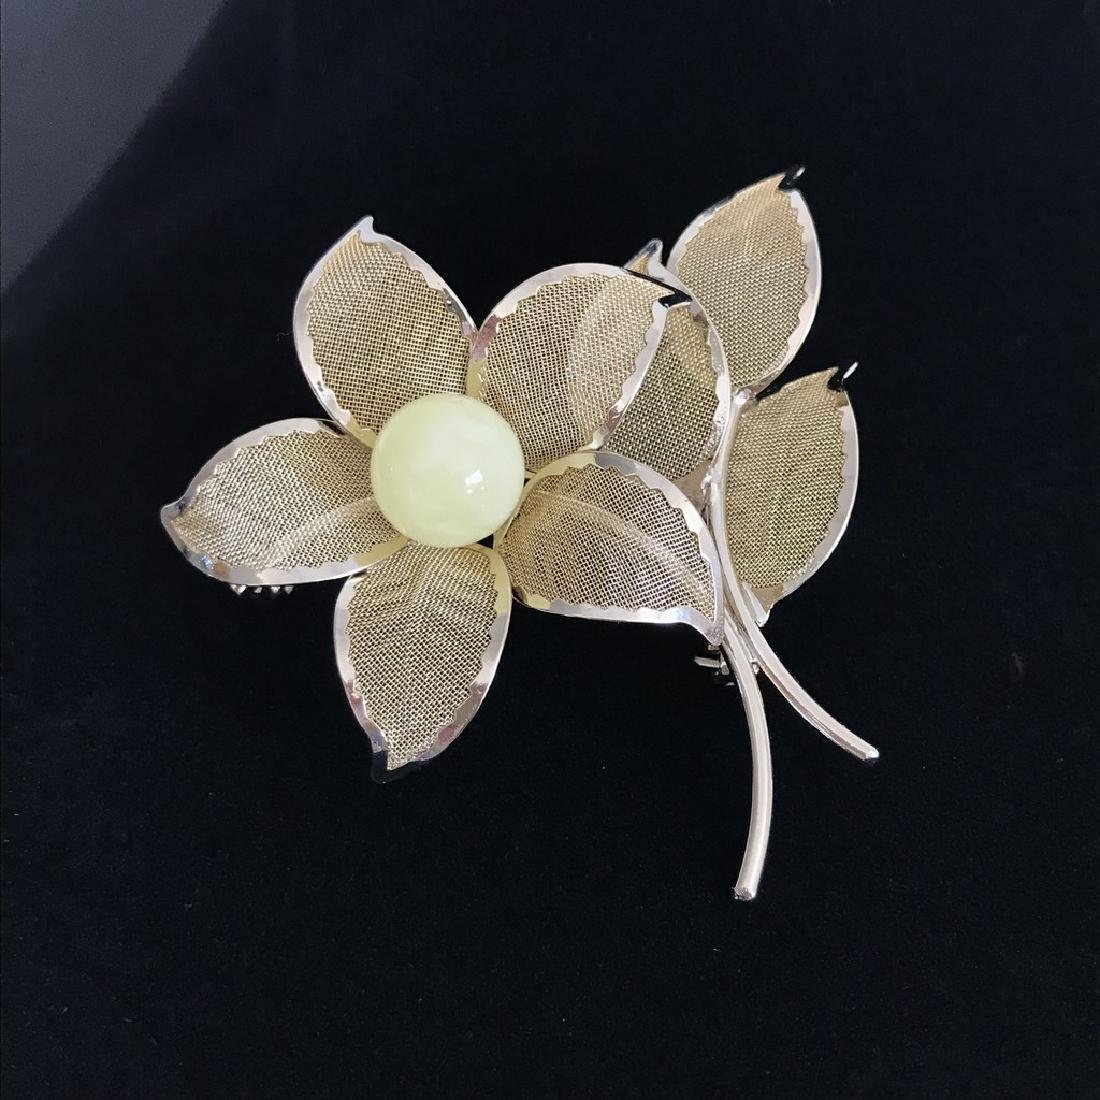 Vintage style gold-plated brooch 57x56mm with Baltic - 3